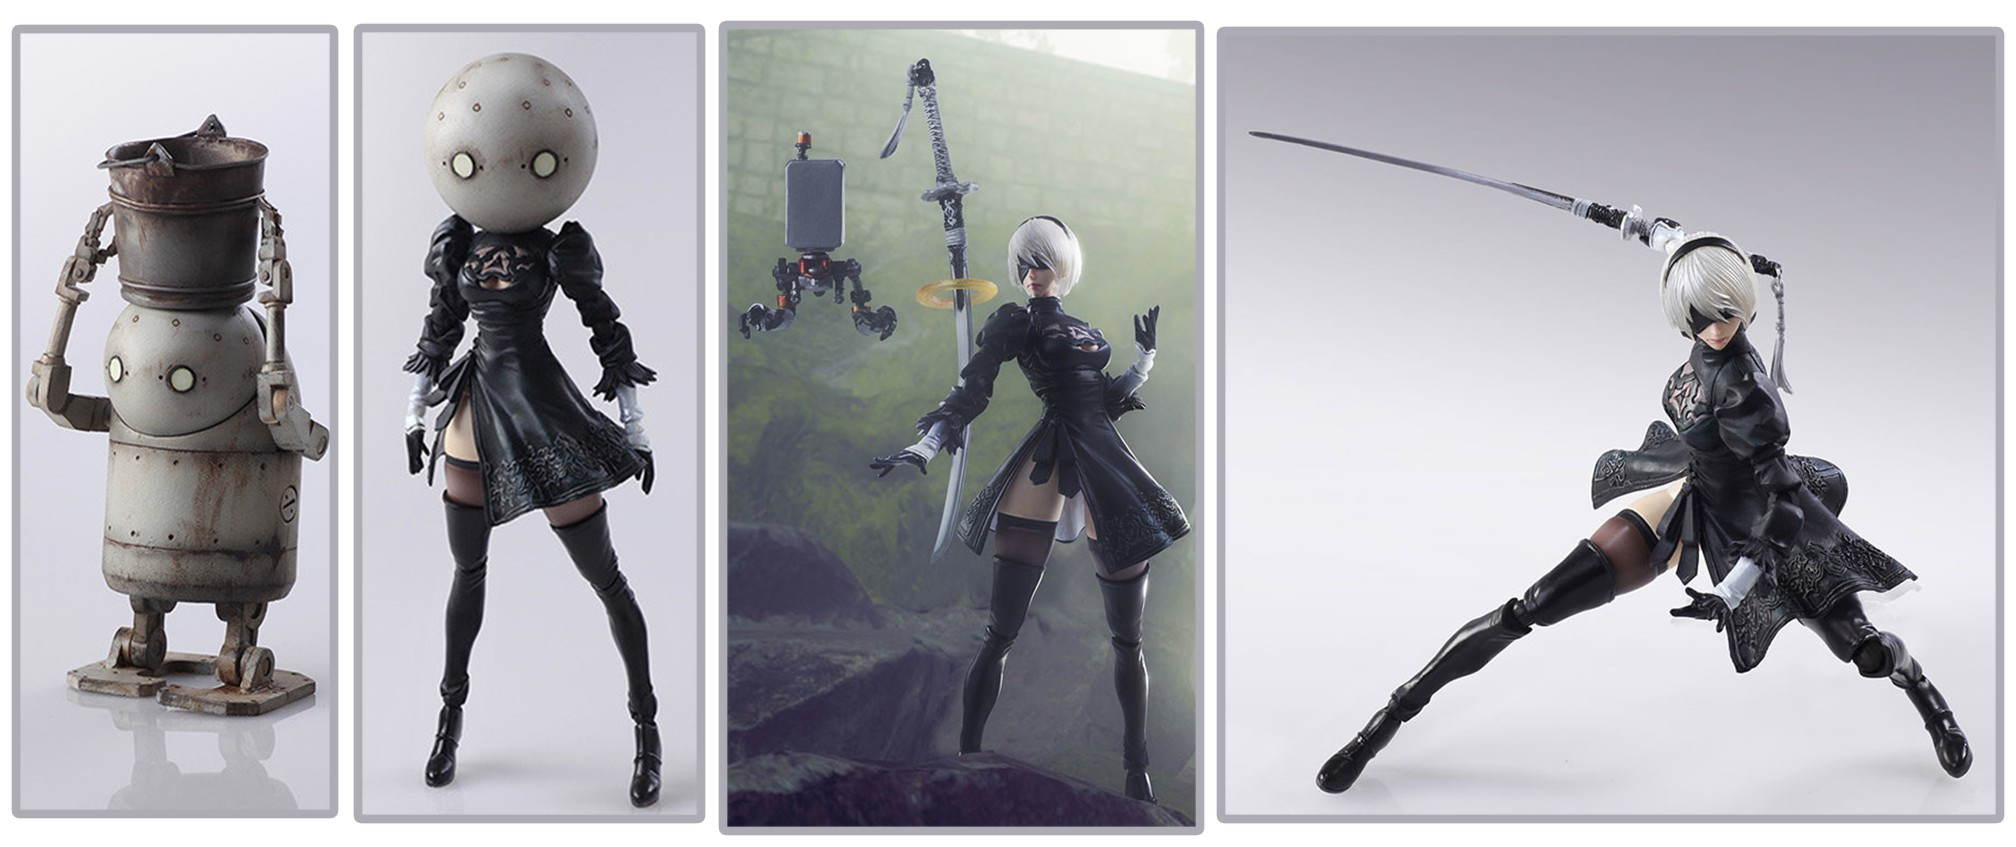 Square Enix – Bring Arts: NieR: Automata 2B & Machine Lifeform Set (March 2018)